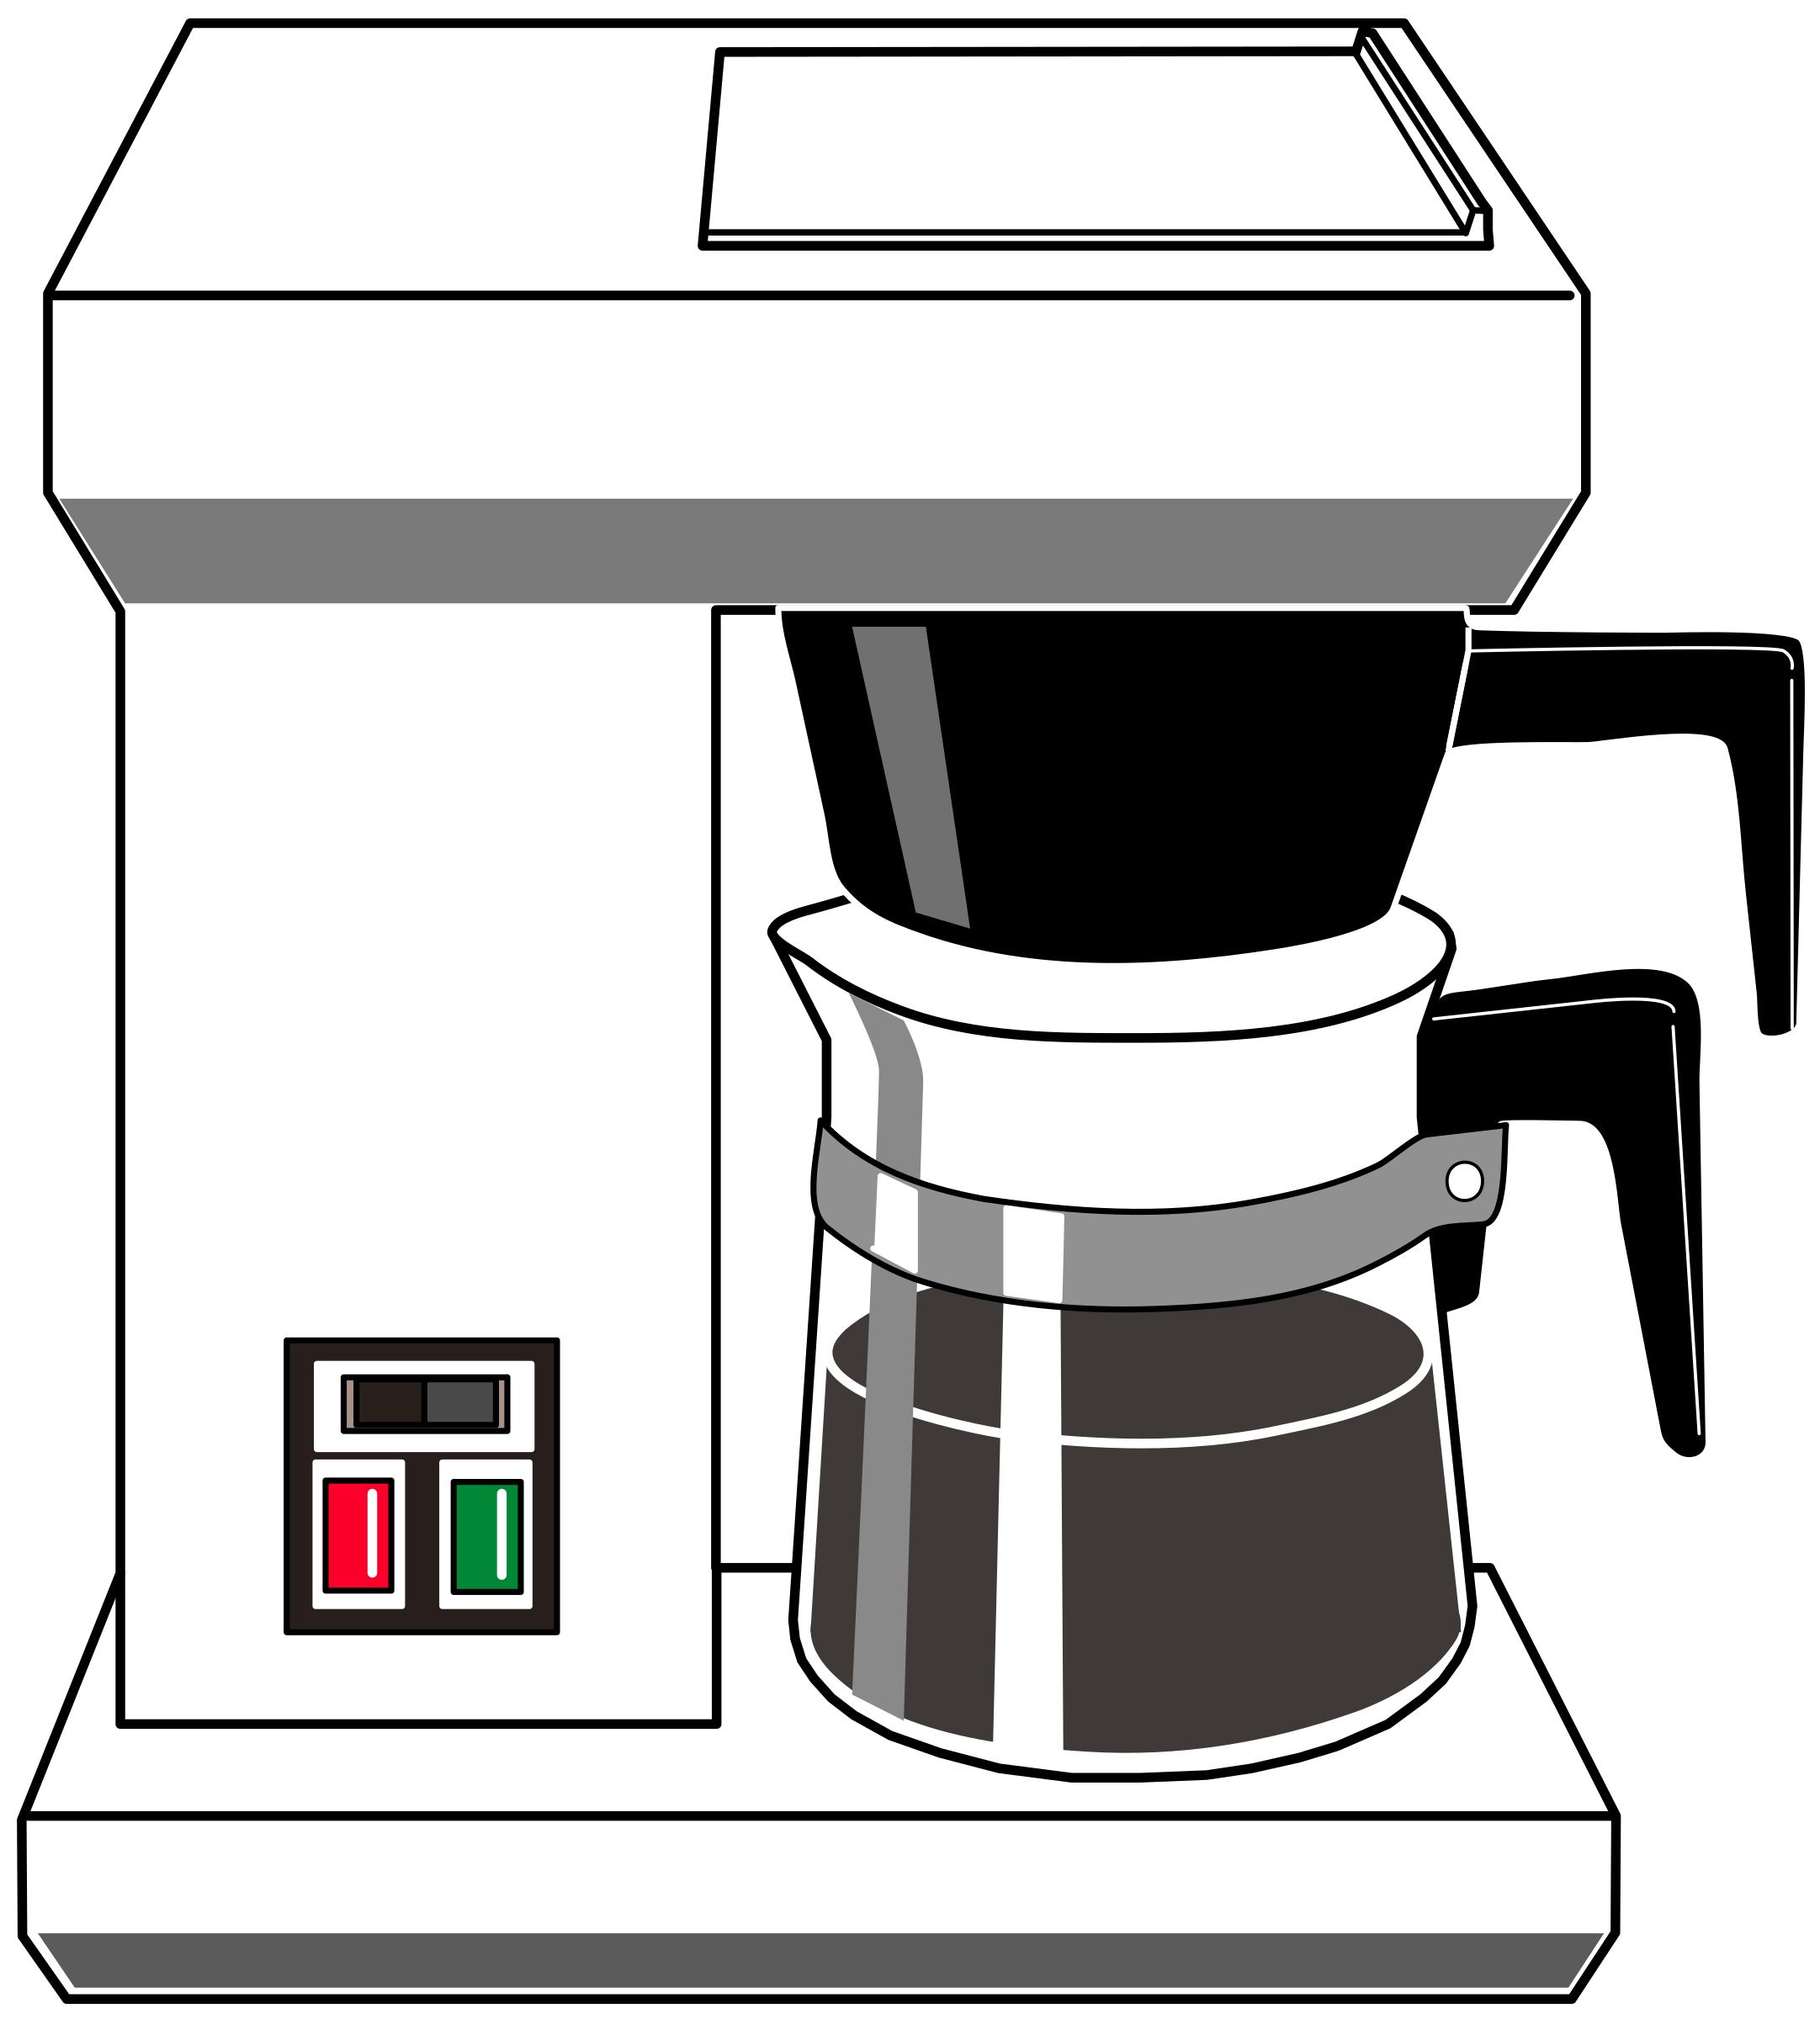 png transparent download Coffee maker clipart. Drip big image png